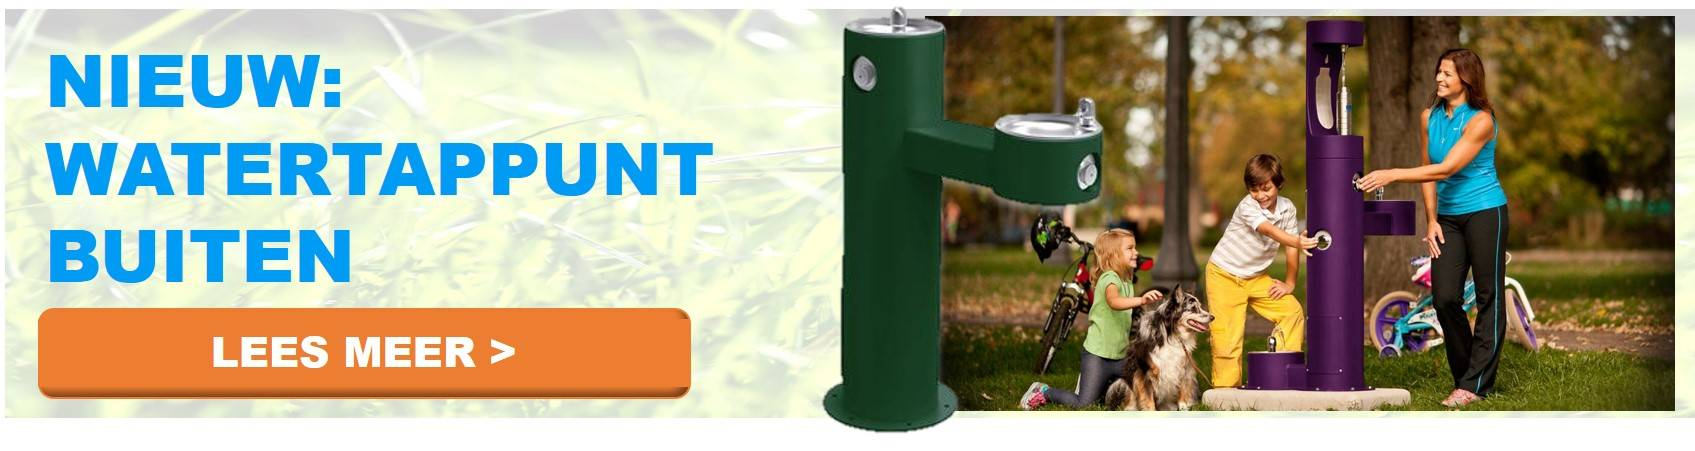 watertappunt outdoor, watertappunt buiten